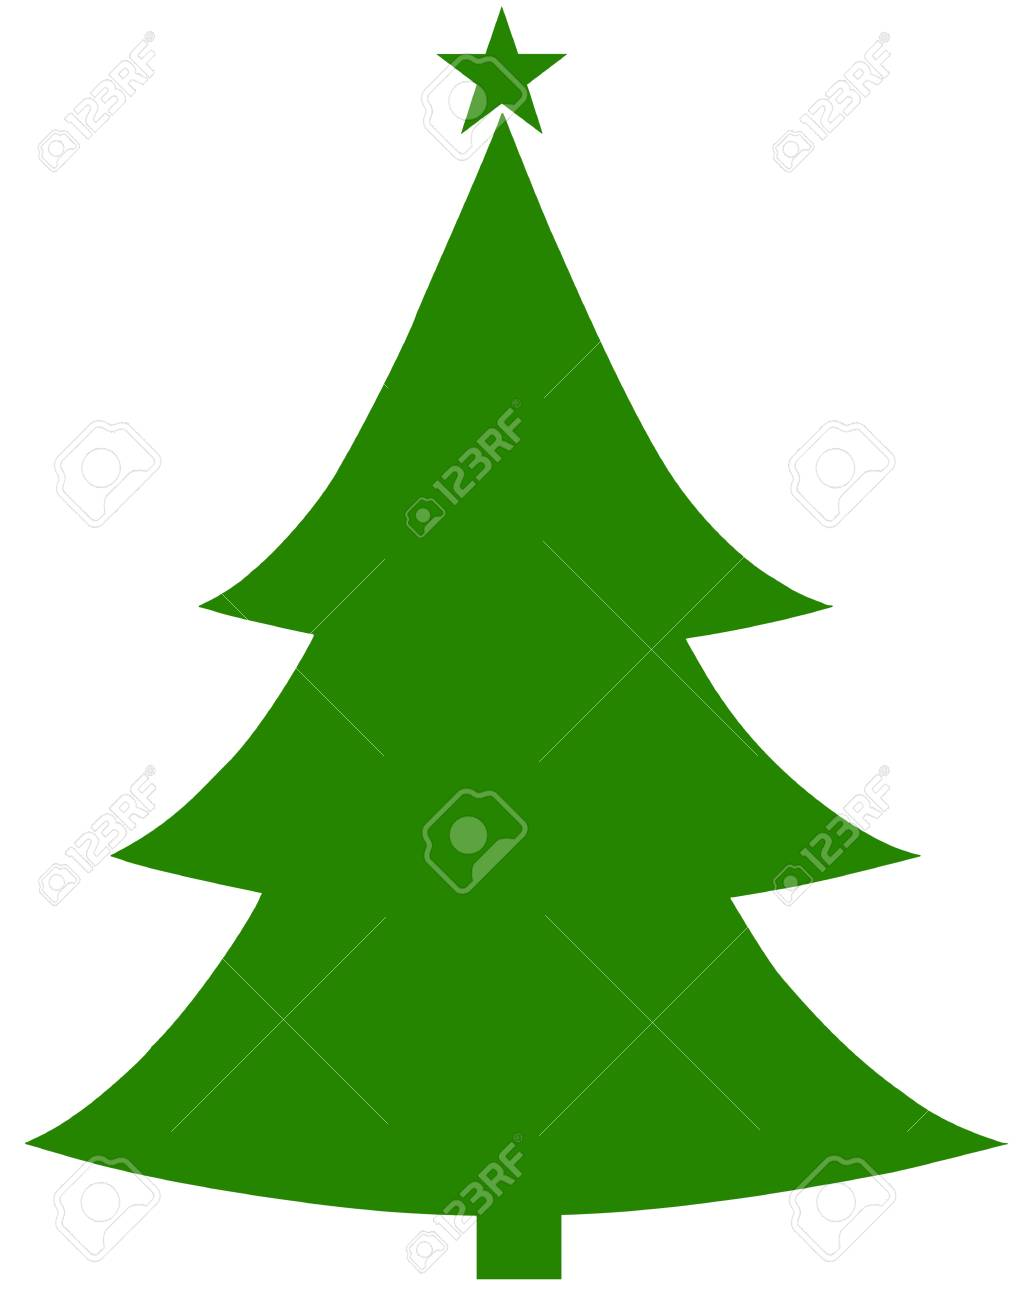 Christmas Tree Vector.Christmas Tree Vector Flat Design Style